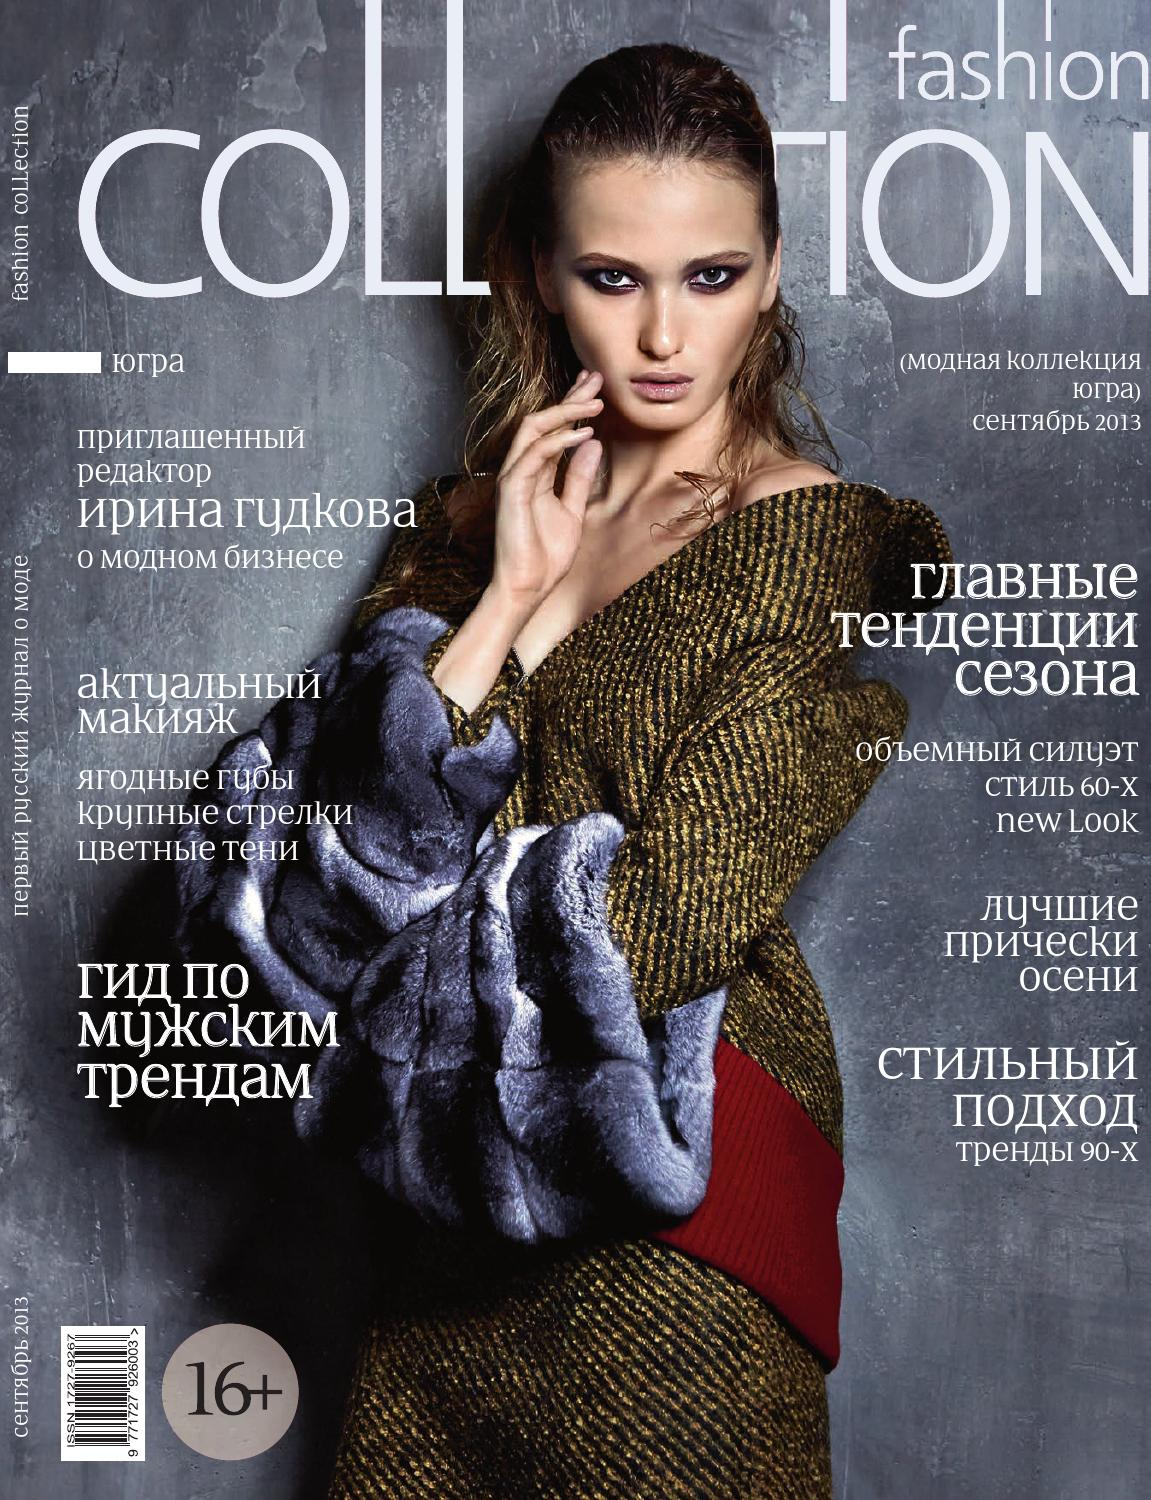 3b1deeef62e Fashion Collection Югра. Сентябрь 2013 by Fashion Collection - issuu